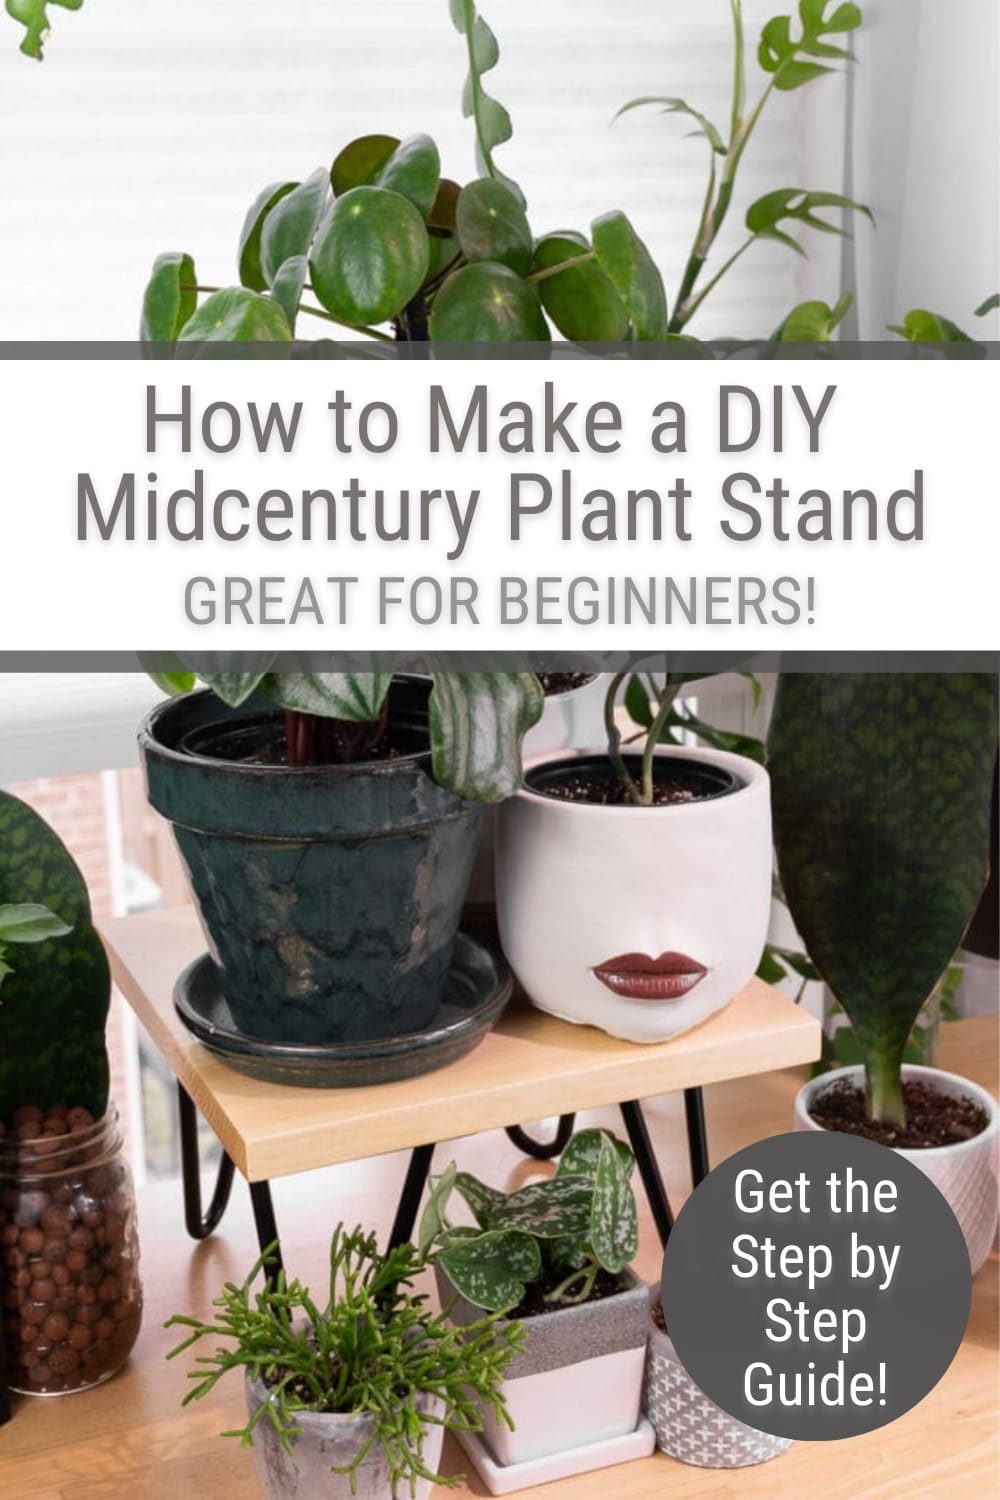 DIY midcentury plant stand with plants on it and text How to Make DIY Midcentury Plant Stand Great for Beginners